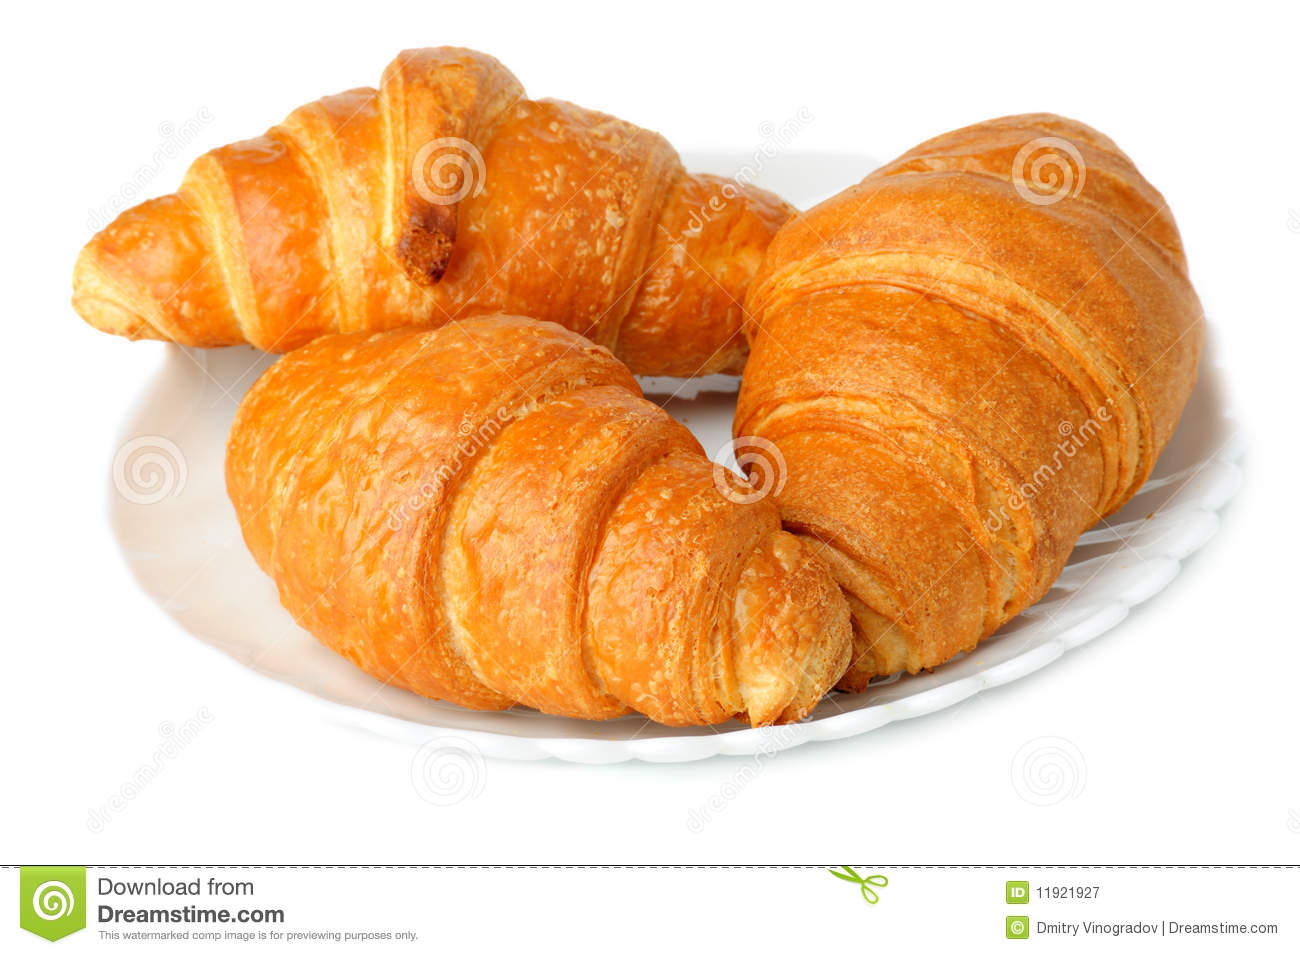 Croissants Royalty Free Stock Photography - Image: 11921927